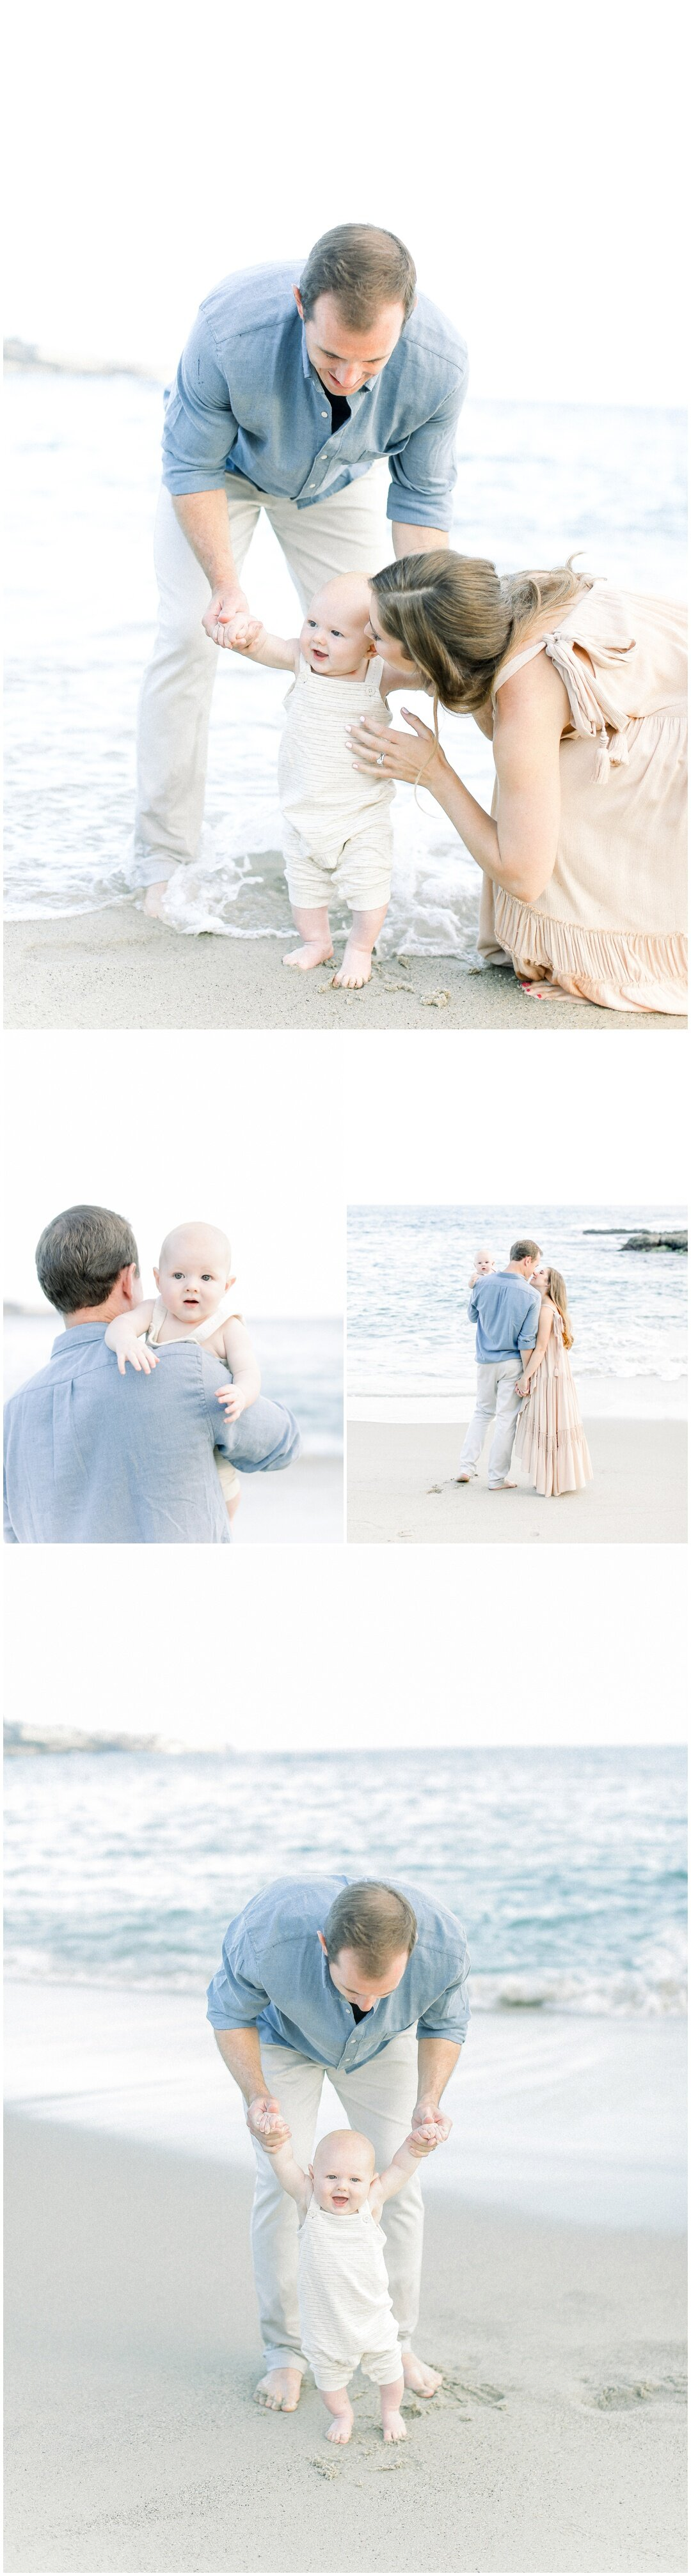 Newport+Beach+Newborn+Maternity+Photographer+Orange+County+Family+Photographer+Cori+Kleckner+Photography+Forgatch+Family+Matt+Kelley+Jack+Forgatch+_4411.jpg